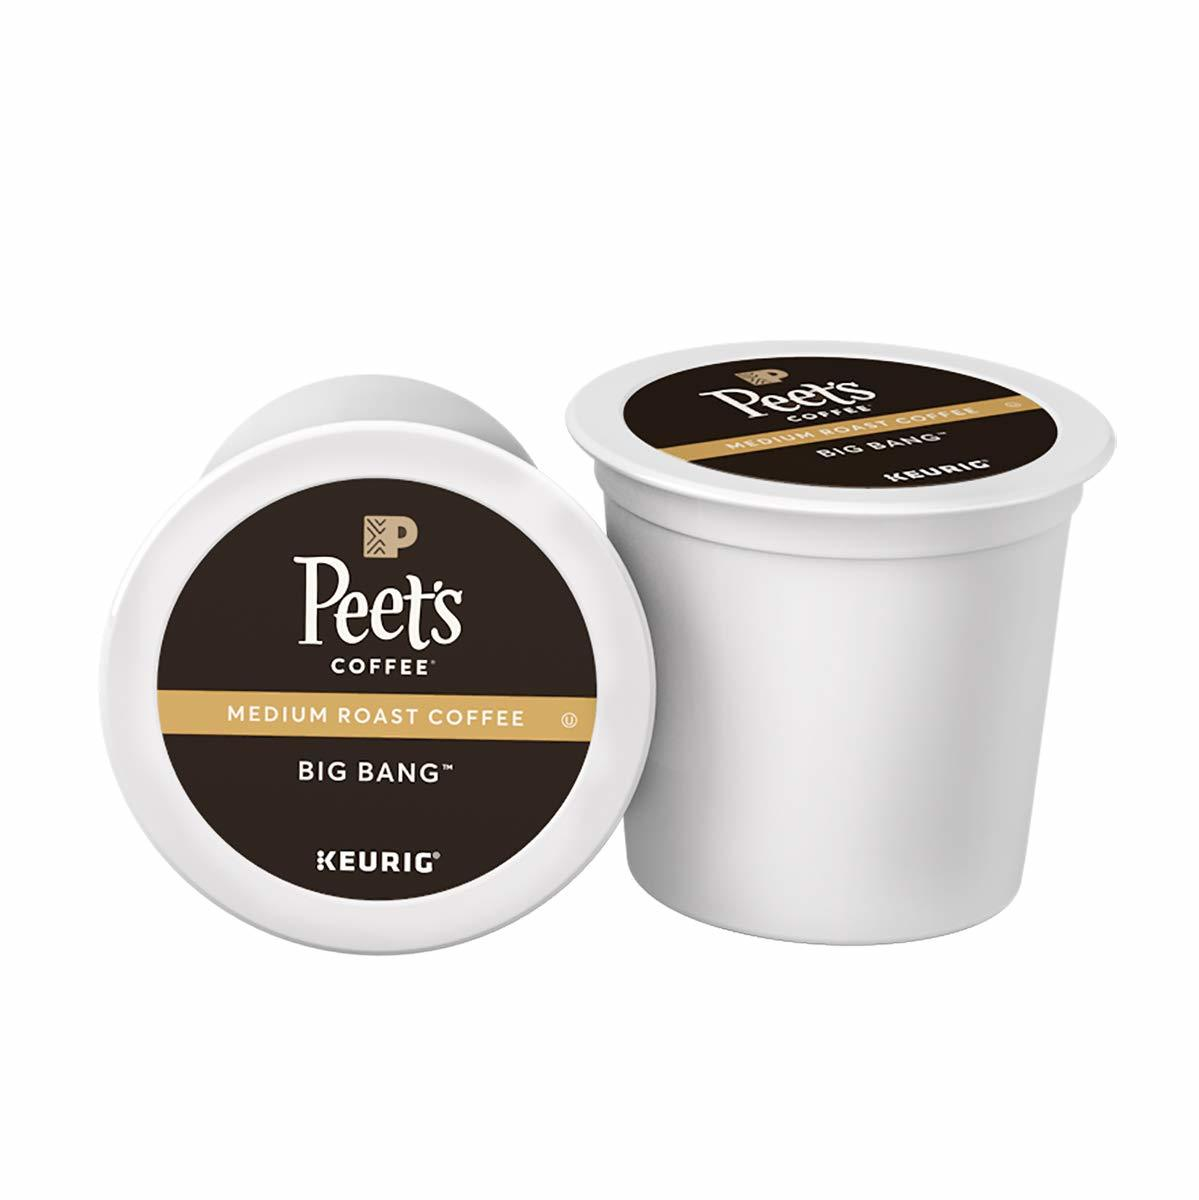 Peet's Coffee Medium Roast Big Bang K-Cup Coffee Pods